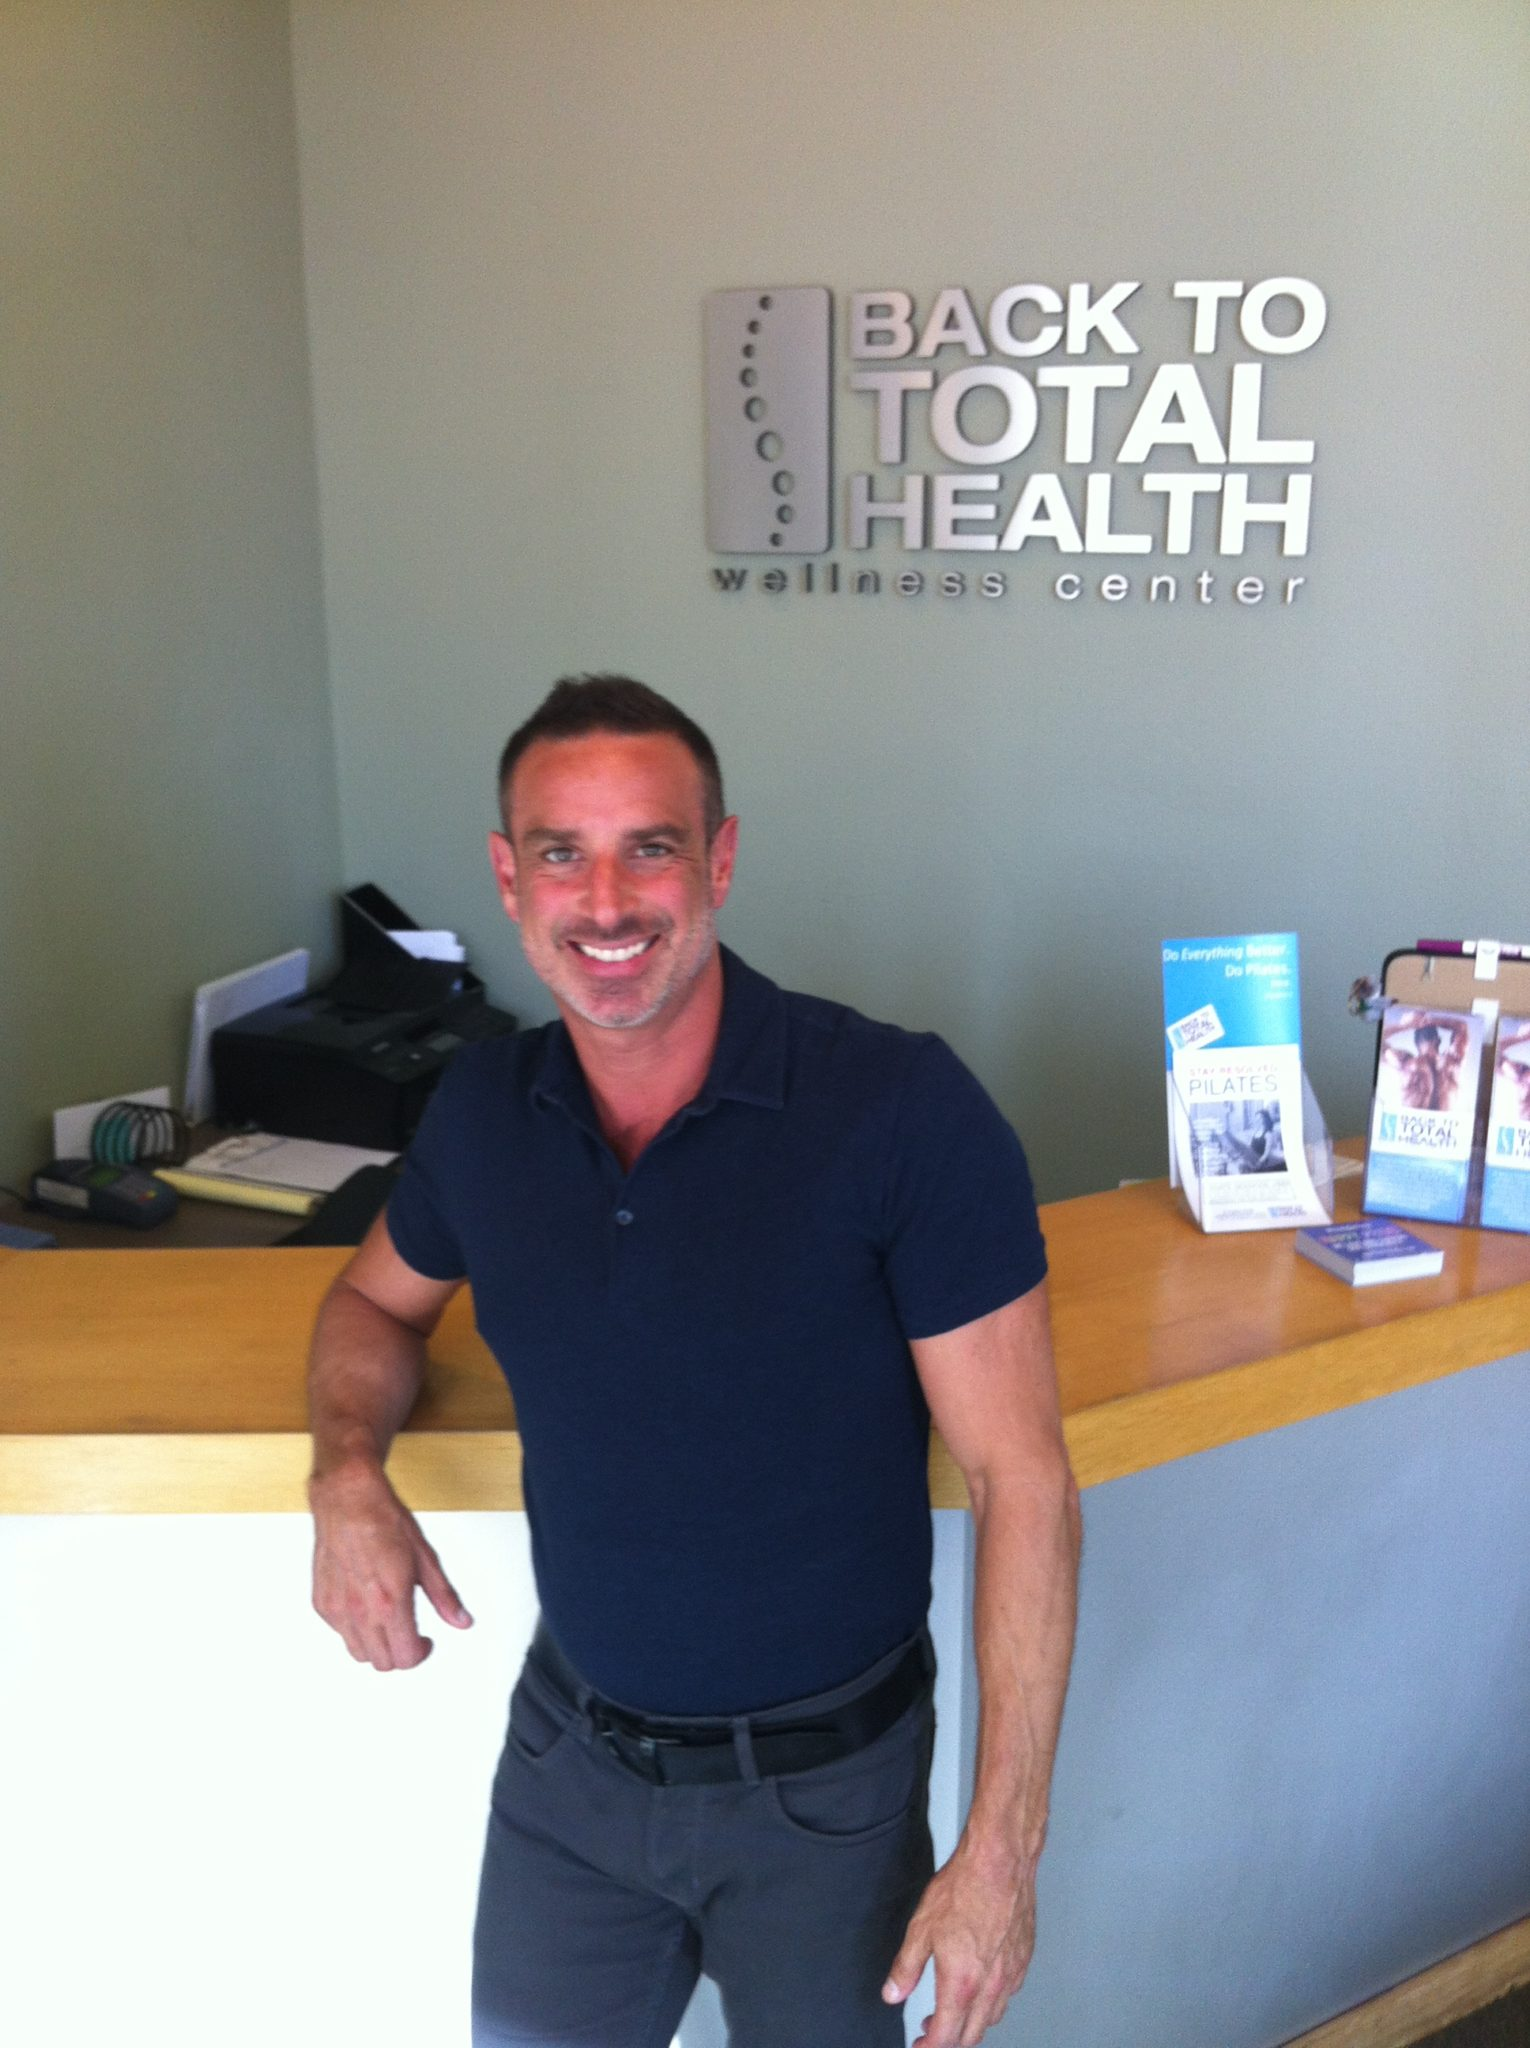 Dr. Eric Swartz and Back to Total Health